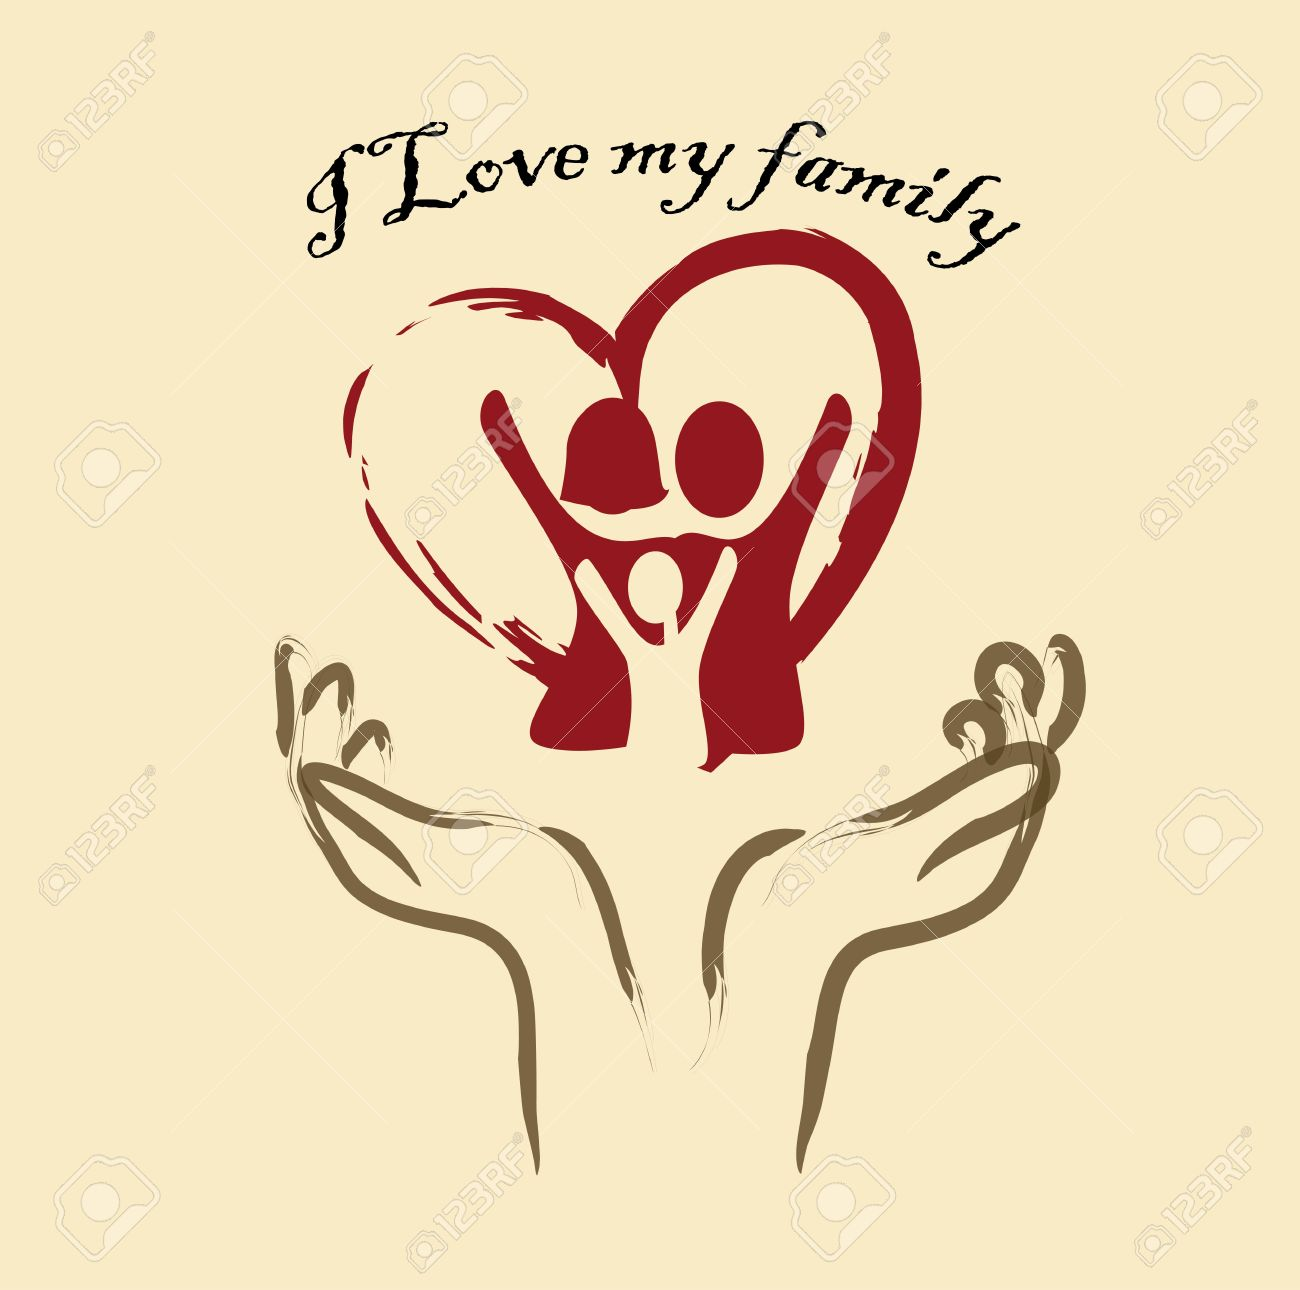 I Love My Family Over Pink Background Illustration Royalty Free